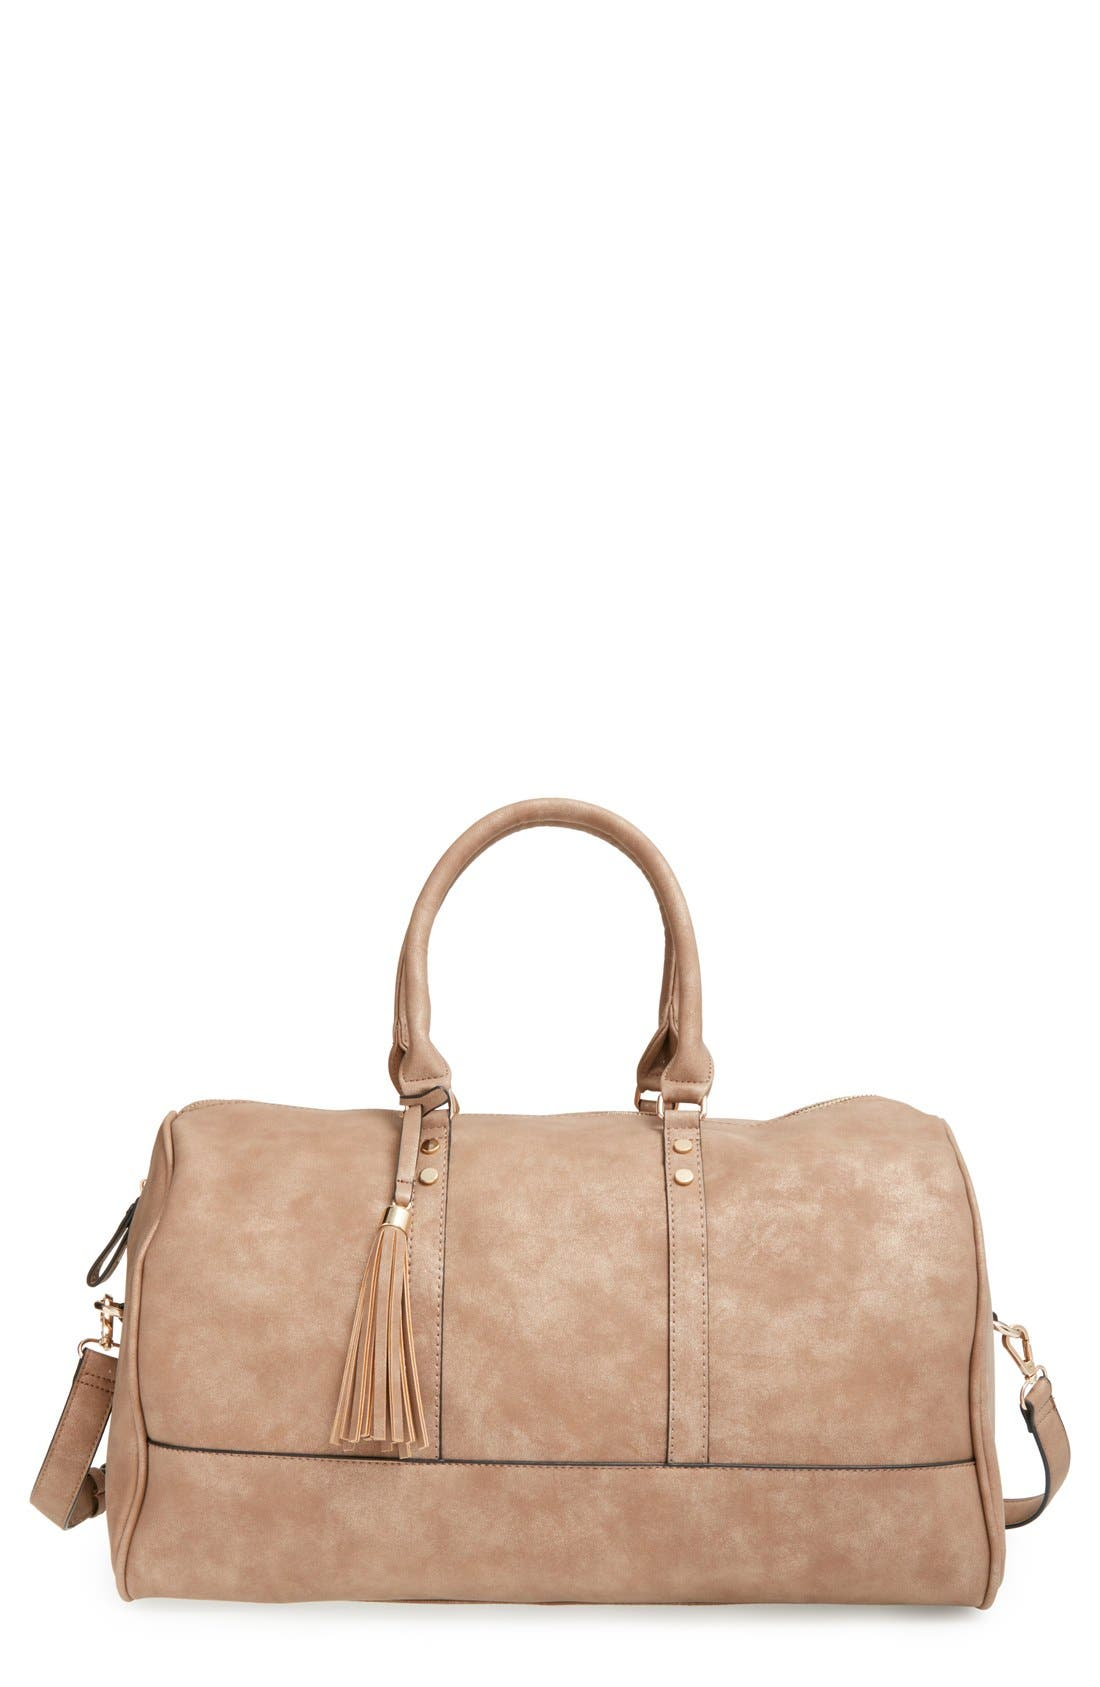 Main Image - Sole Society 'Finley' Faux Leather Weekend Duffel Bag